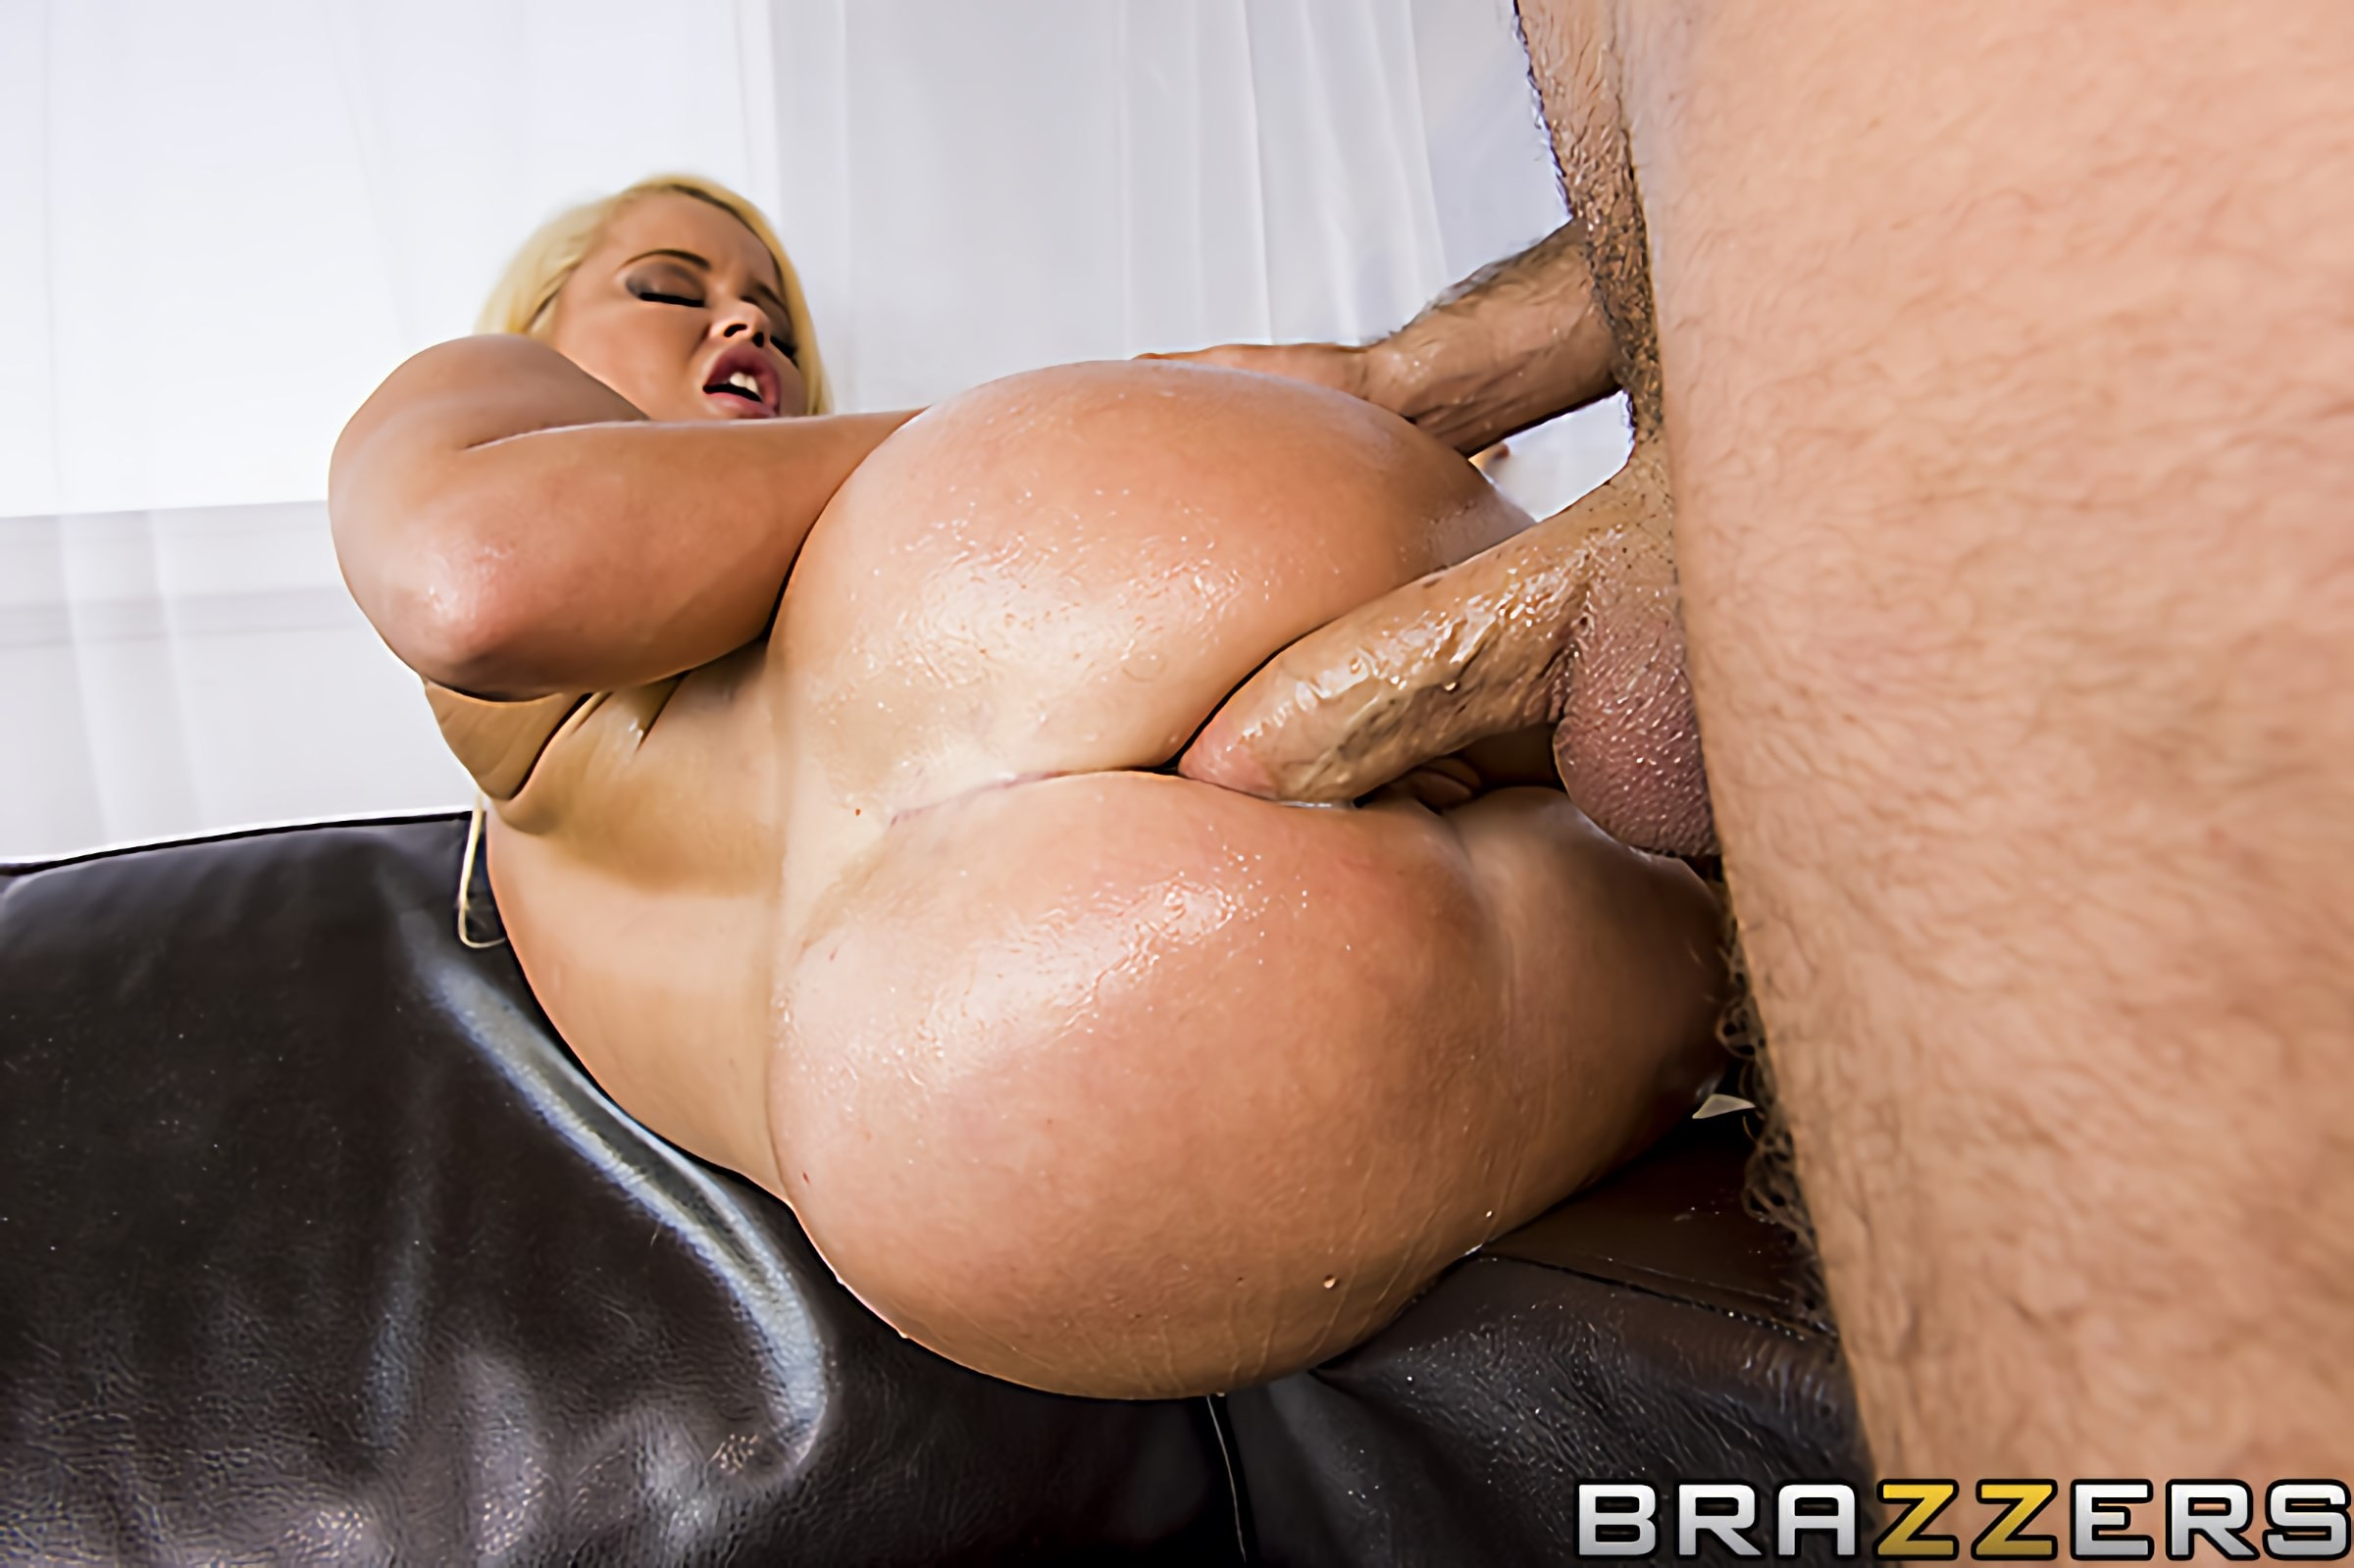 Brazzers 'Car Wash Sex' starring Nikki Delano (photo 9)